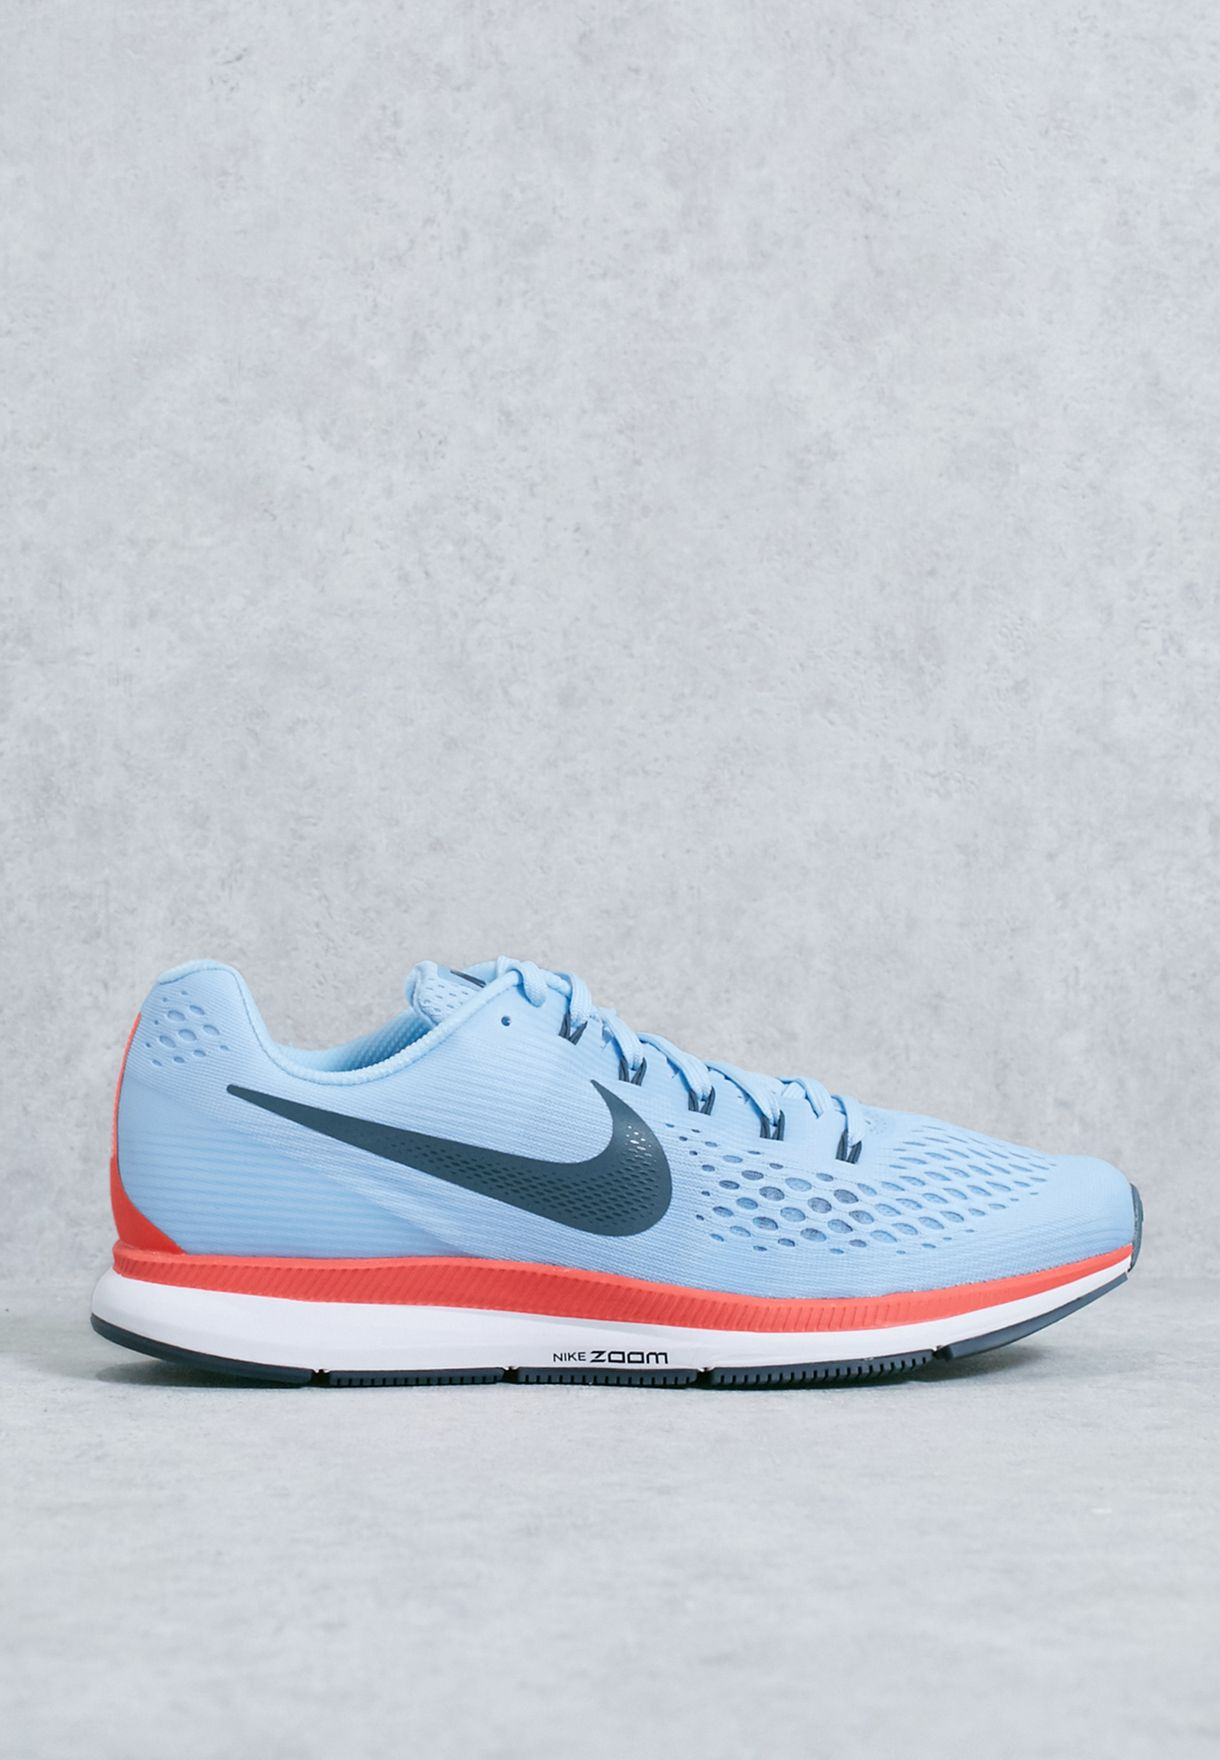 6b566c6fa902 Shop Nike blue Air Zoom Pegasus 34 880555-404 for Men in UAE ...